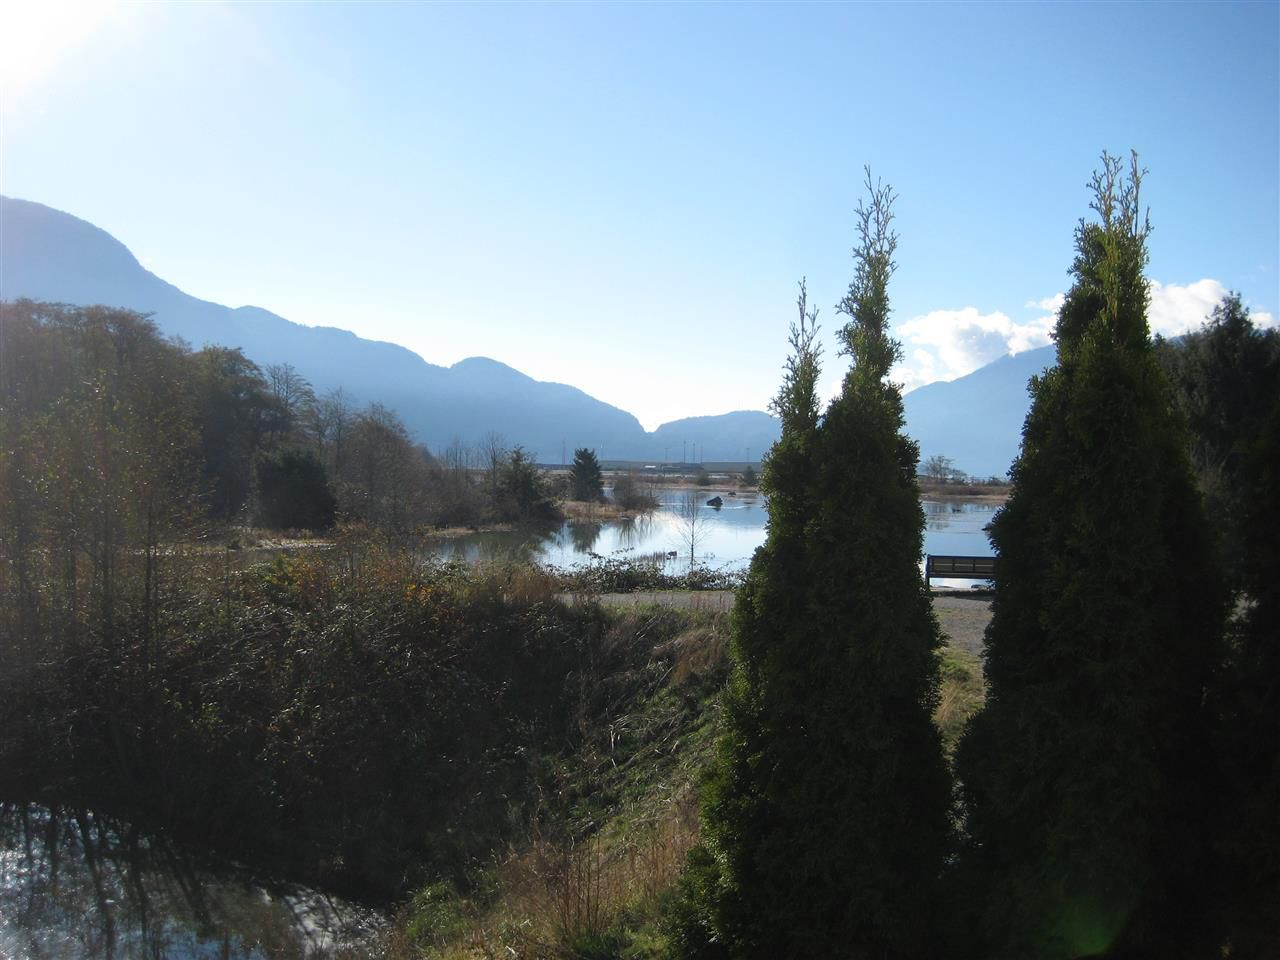 """Main Photo: 7 1204 MAIN Street in Squamish: Downtown SQ Townhouse for sale in """"Aqua"""" : MLS®# R2221576"""